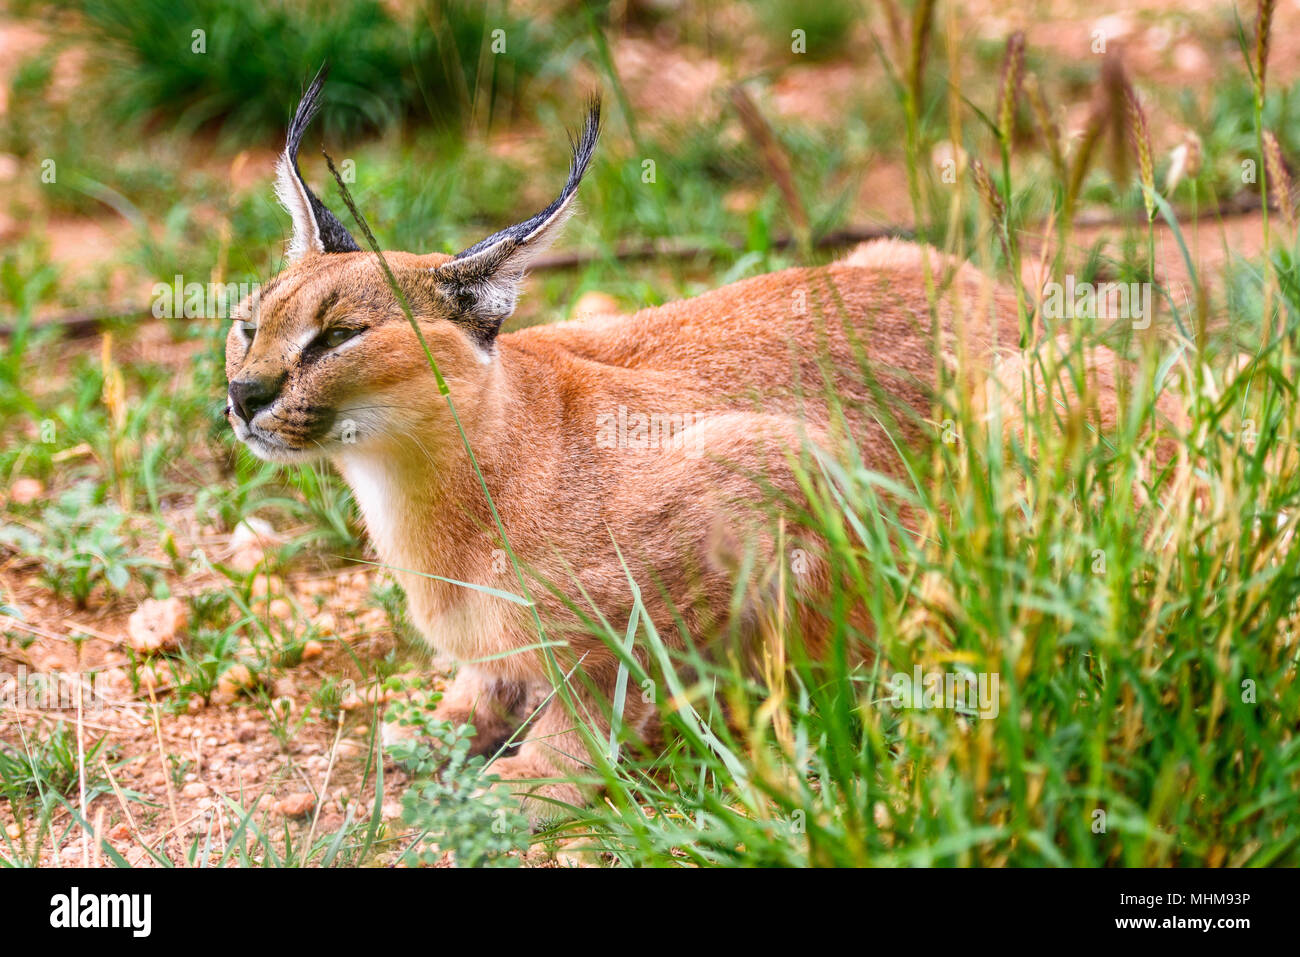 Close up of a caracal at the Naankuse Wildlife Sanctuary, Namibia, Africa - Stock Image